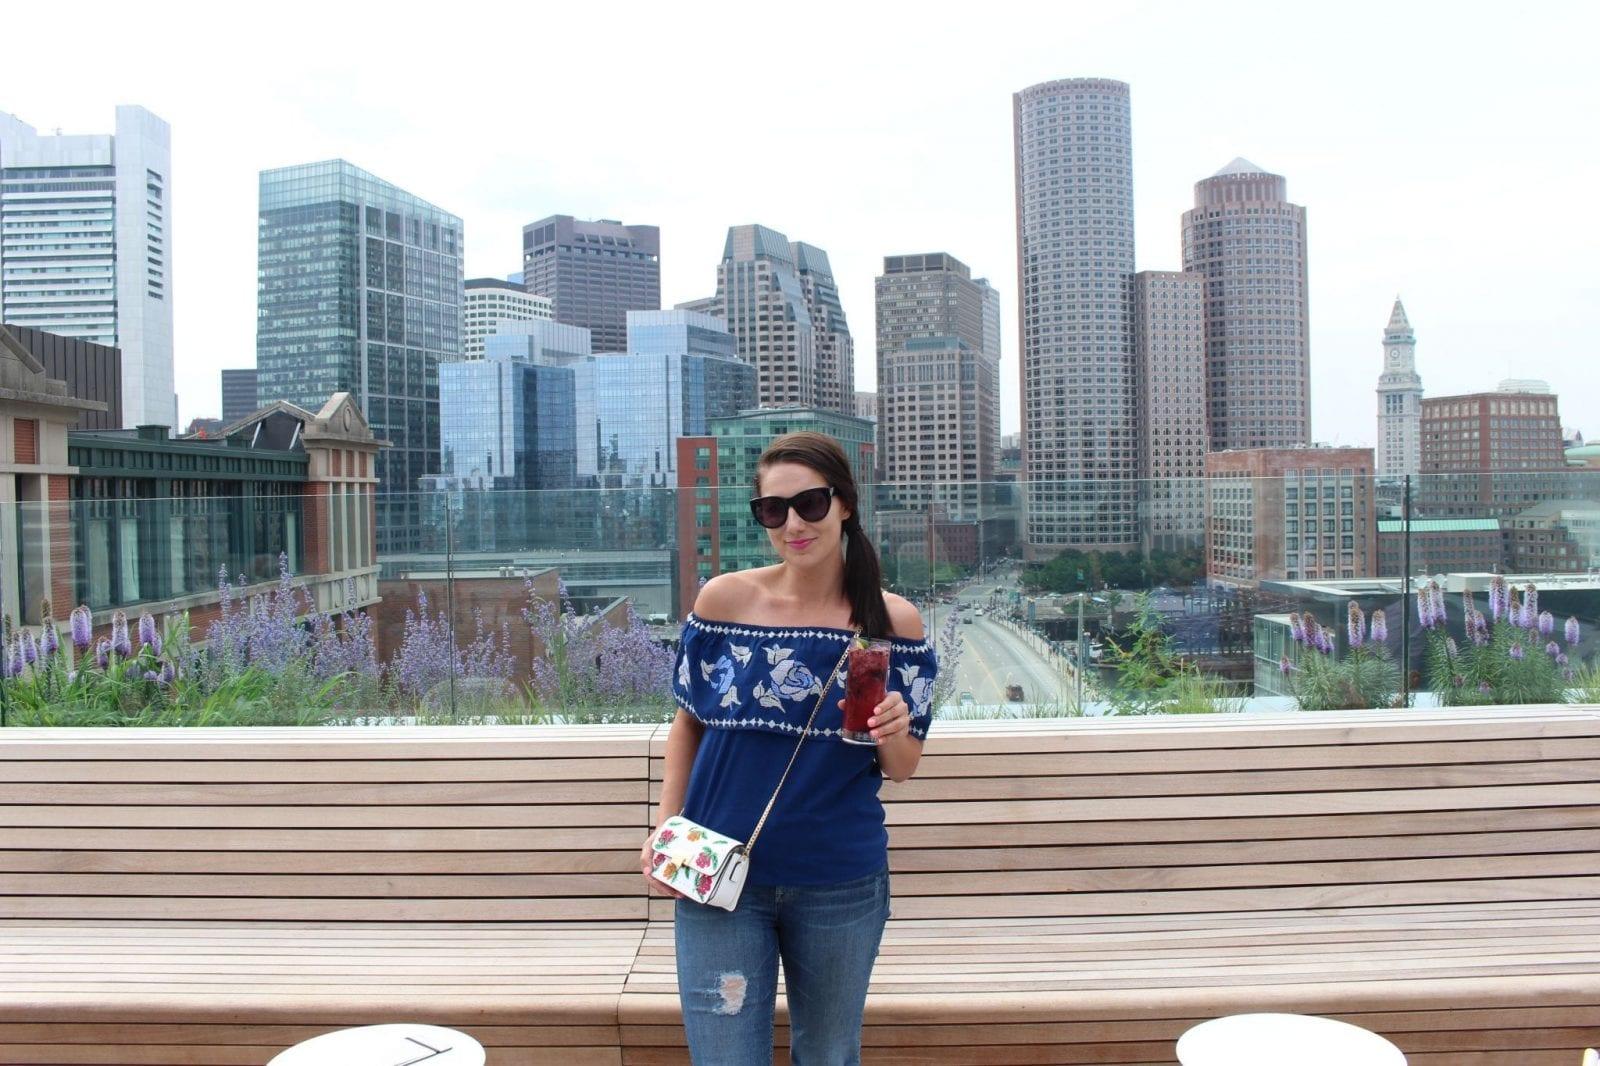 This is me at the rooftop terrace bar at YOTEL Boston.